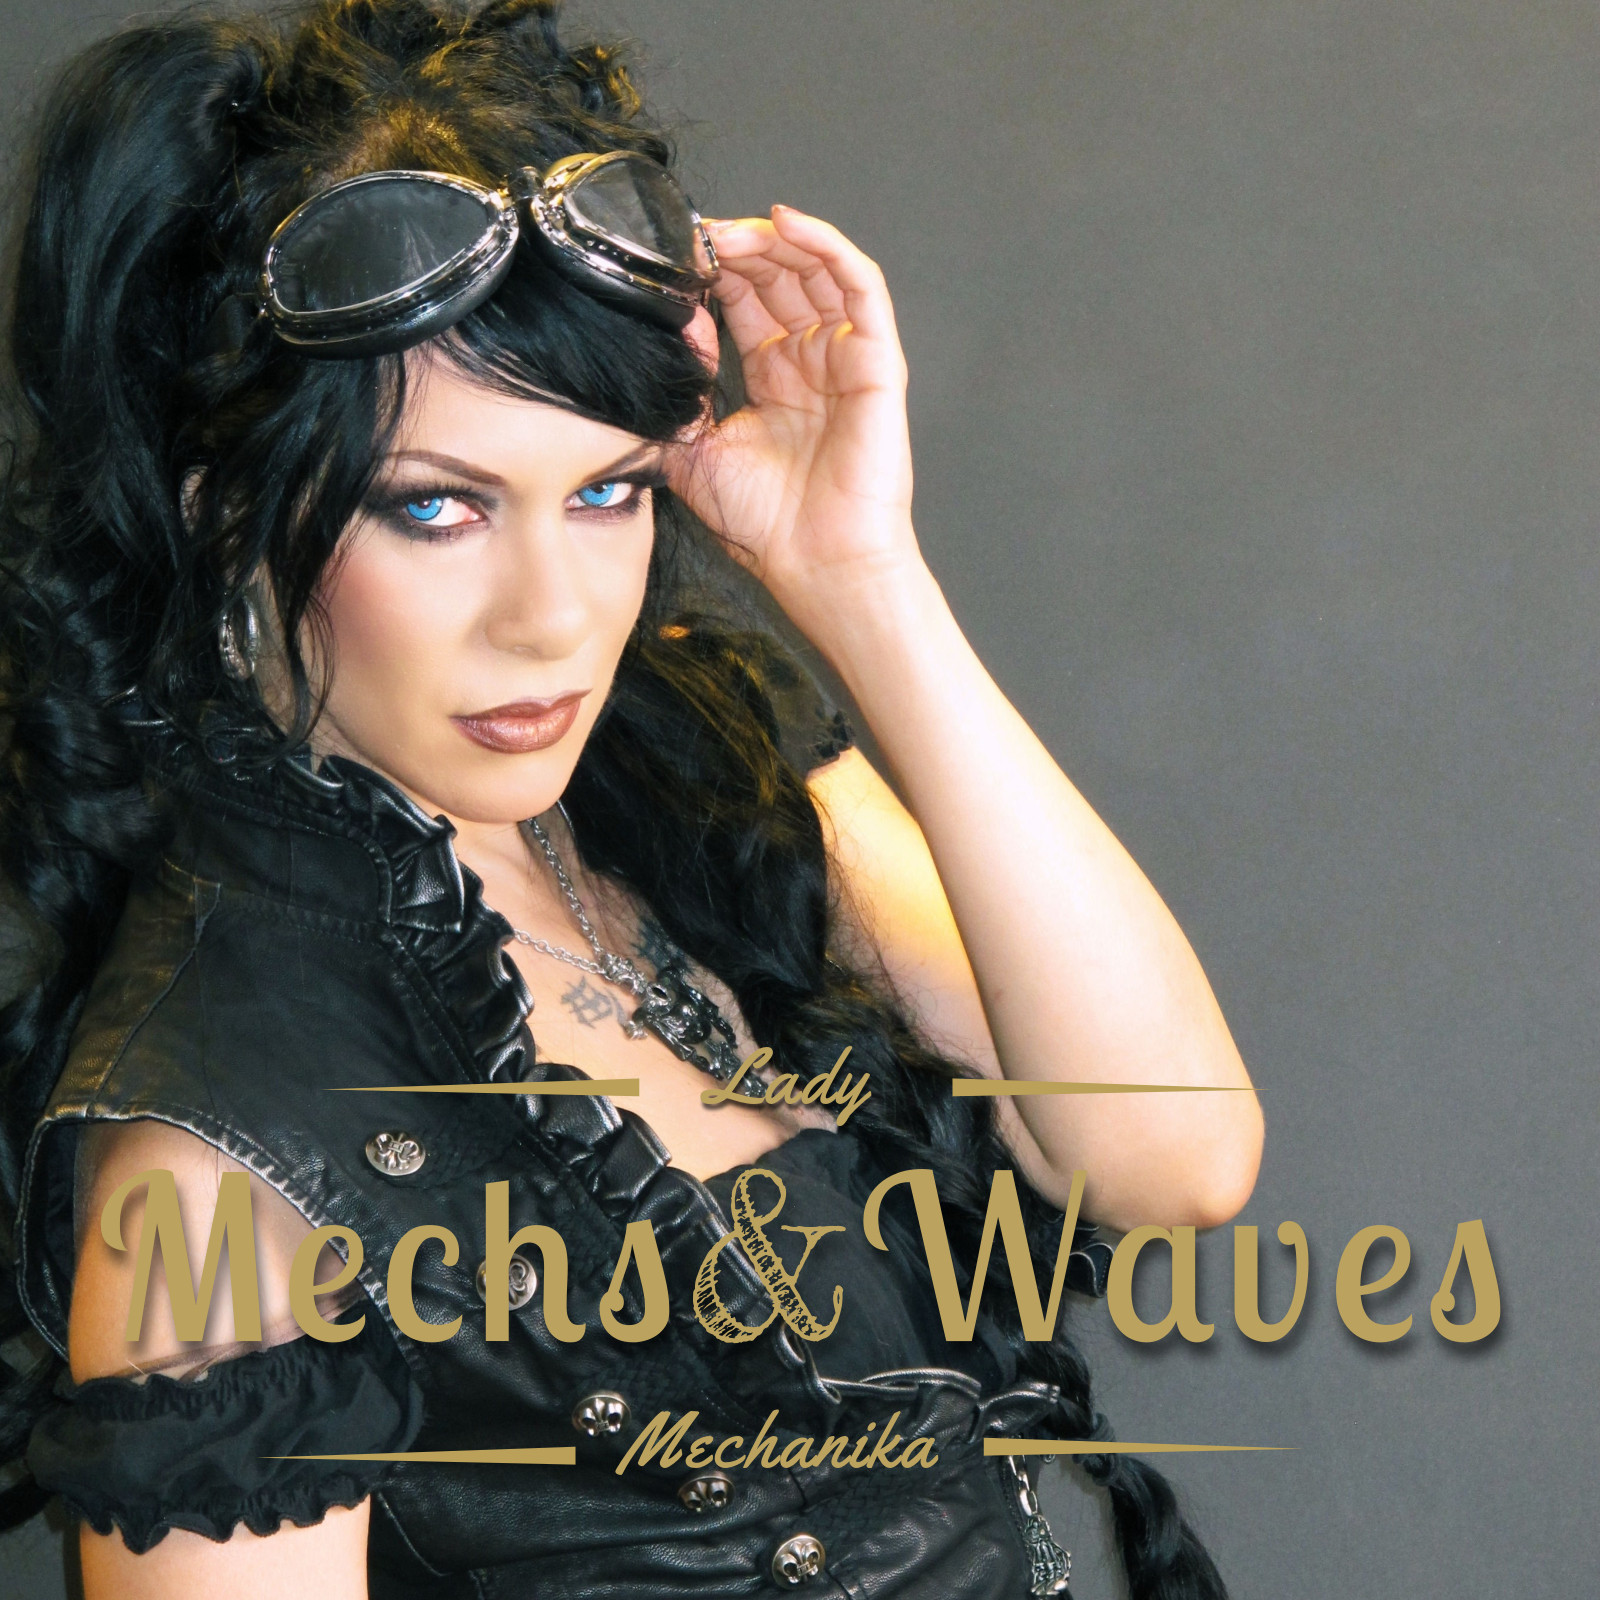 Mechs & Waves - 1 Dom/mes